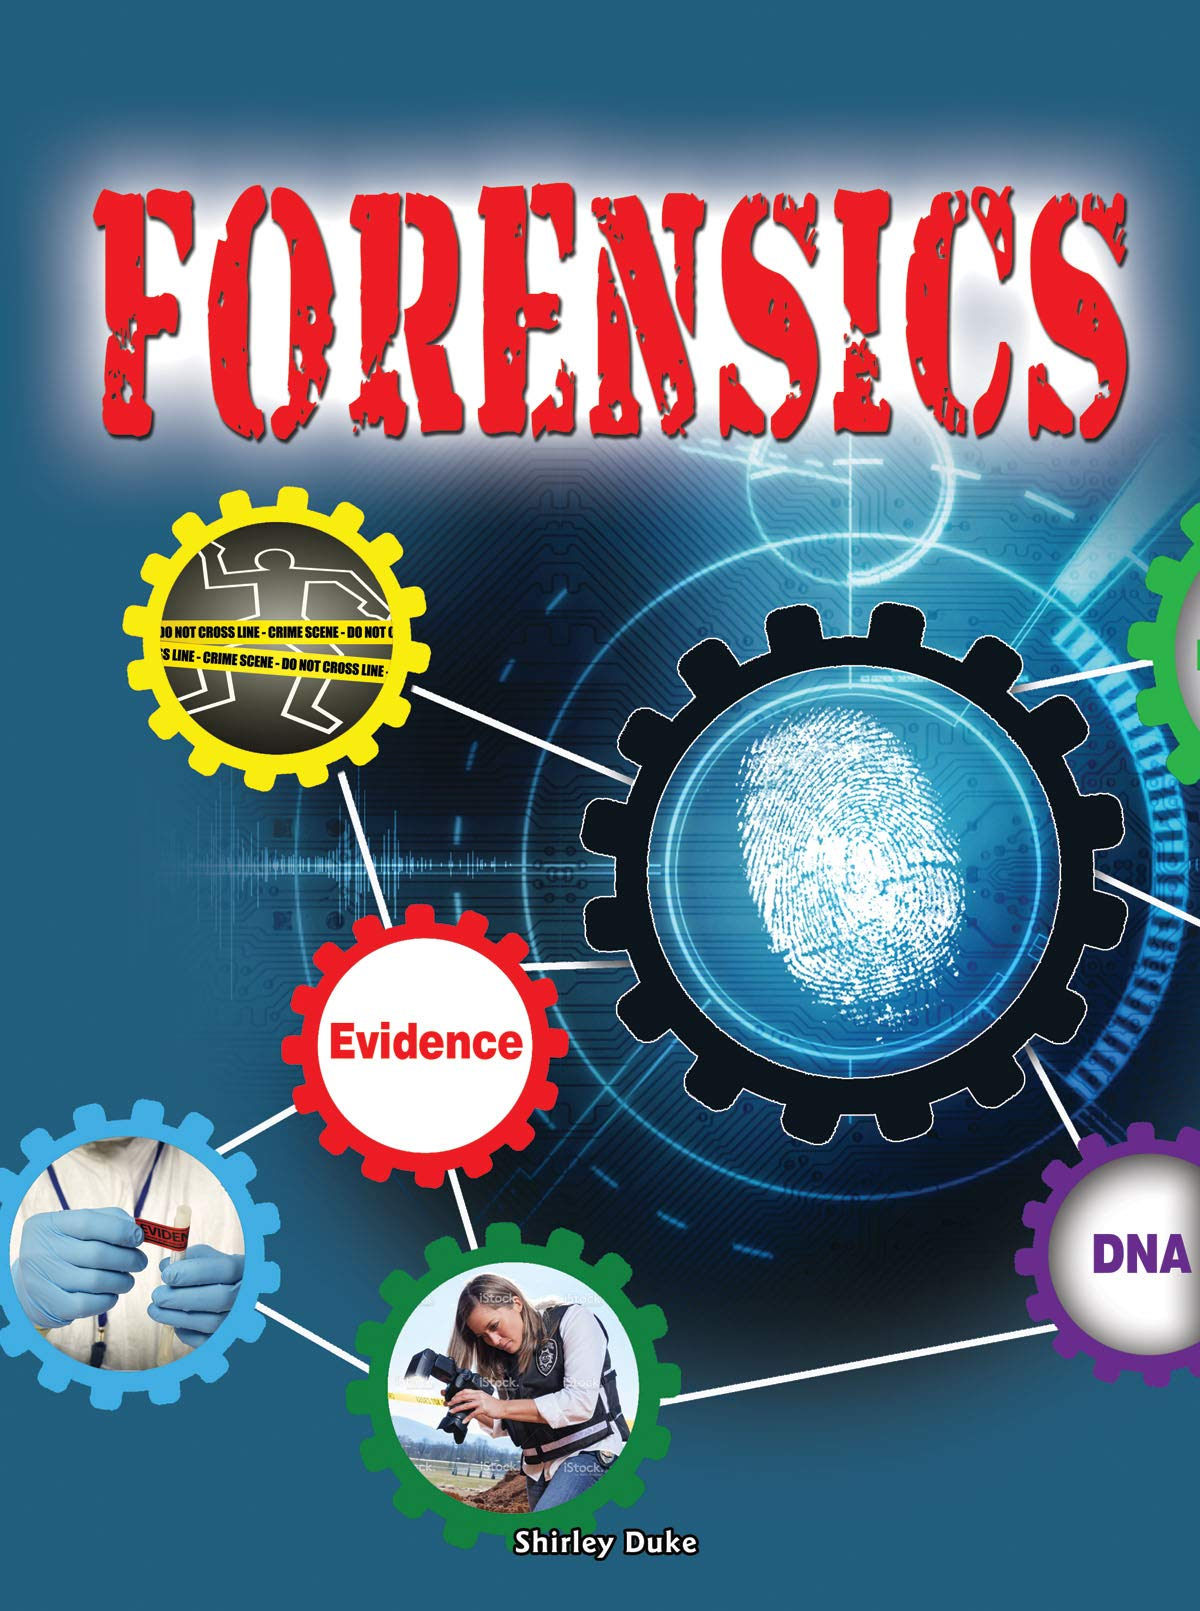 STEAM Jobs in Forensics (STEAM Jobs You'll Love)